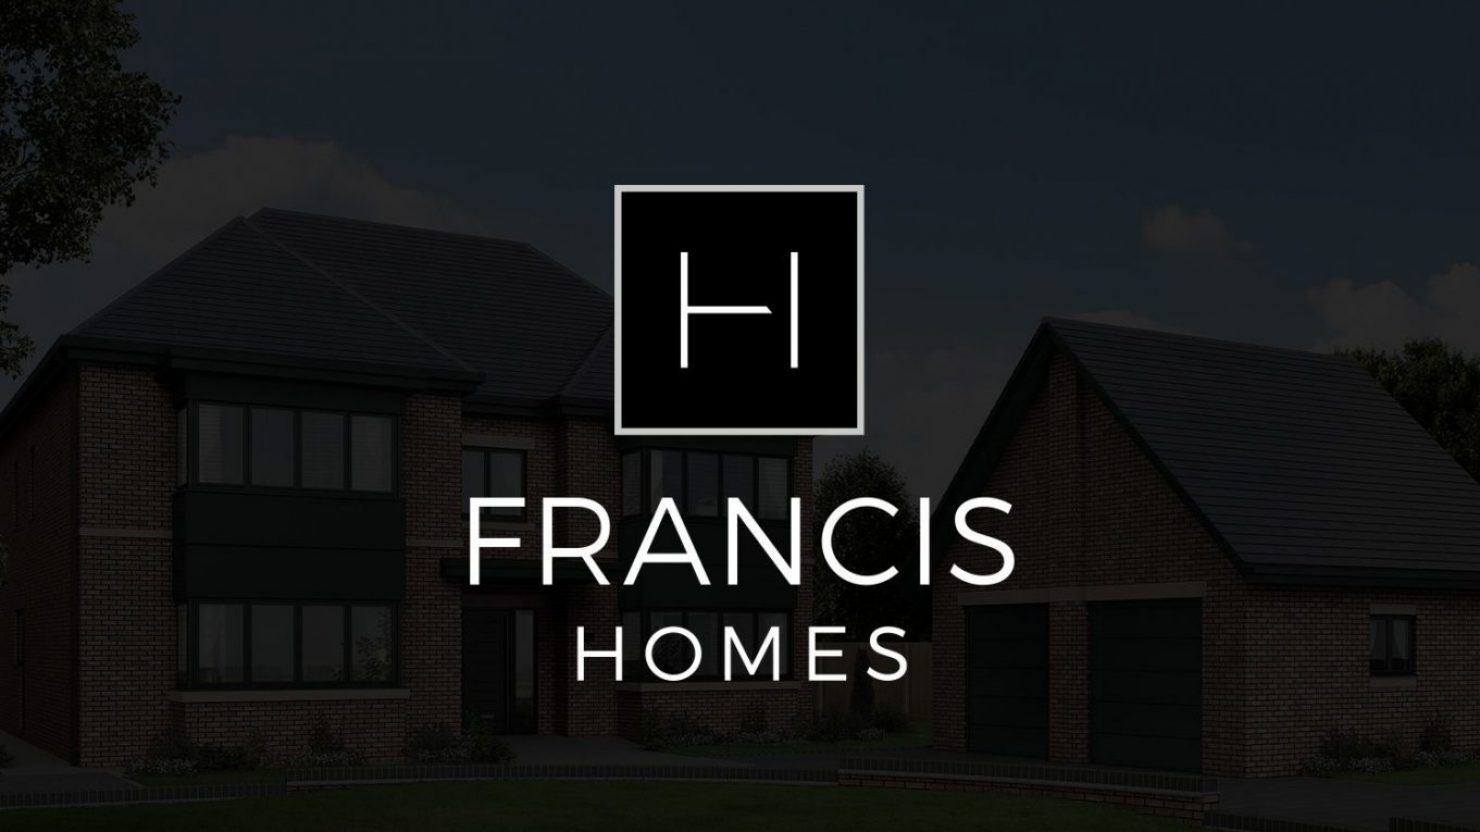 creative logo design for francis homes solihull